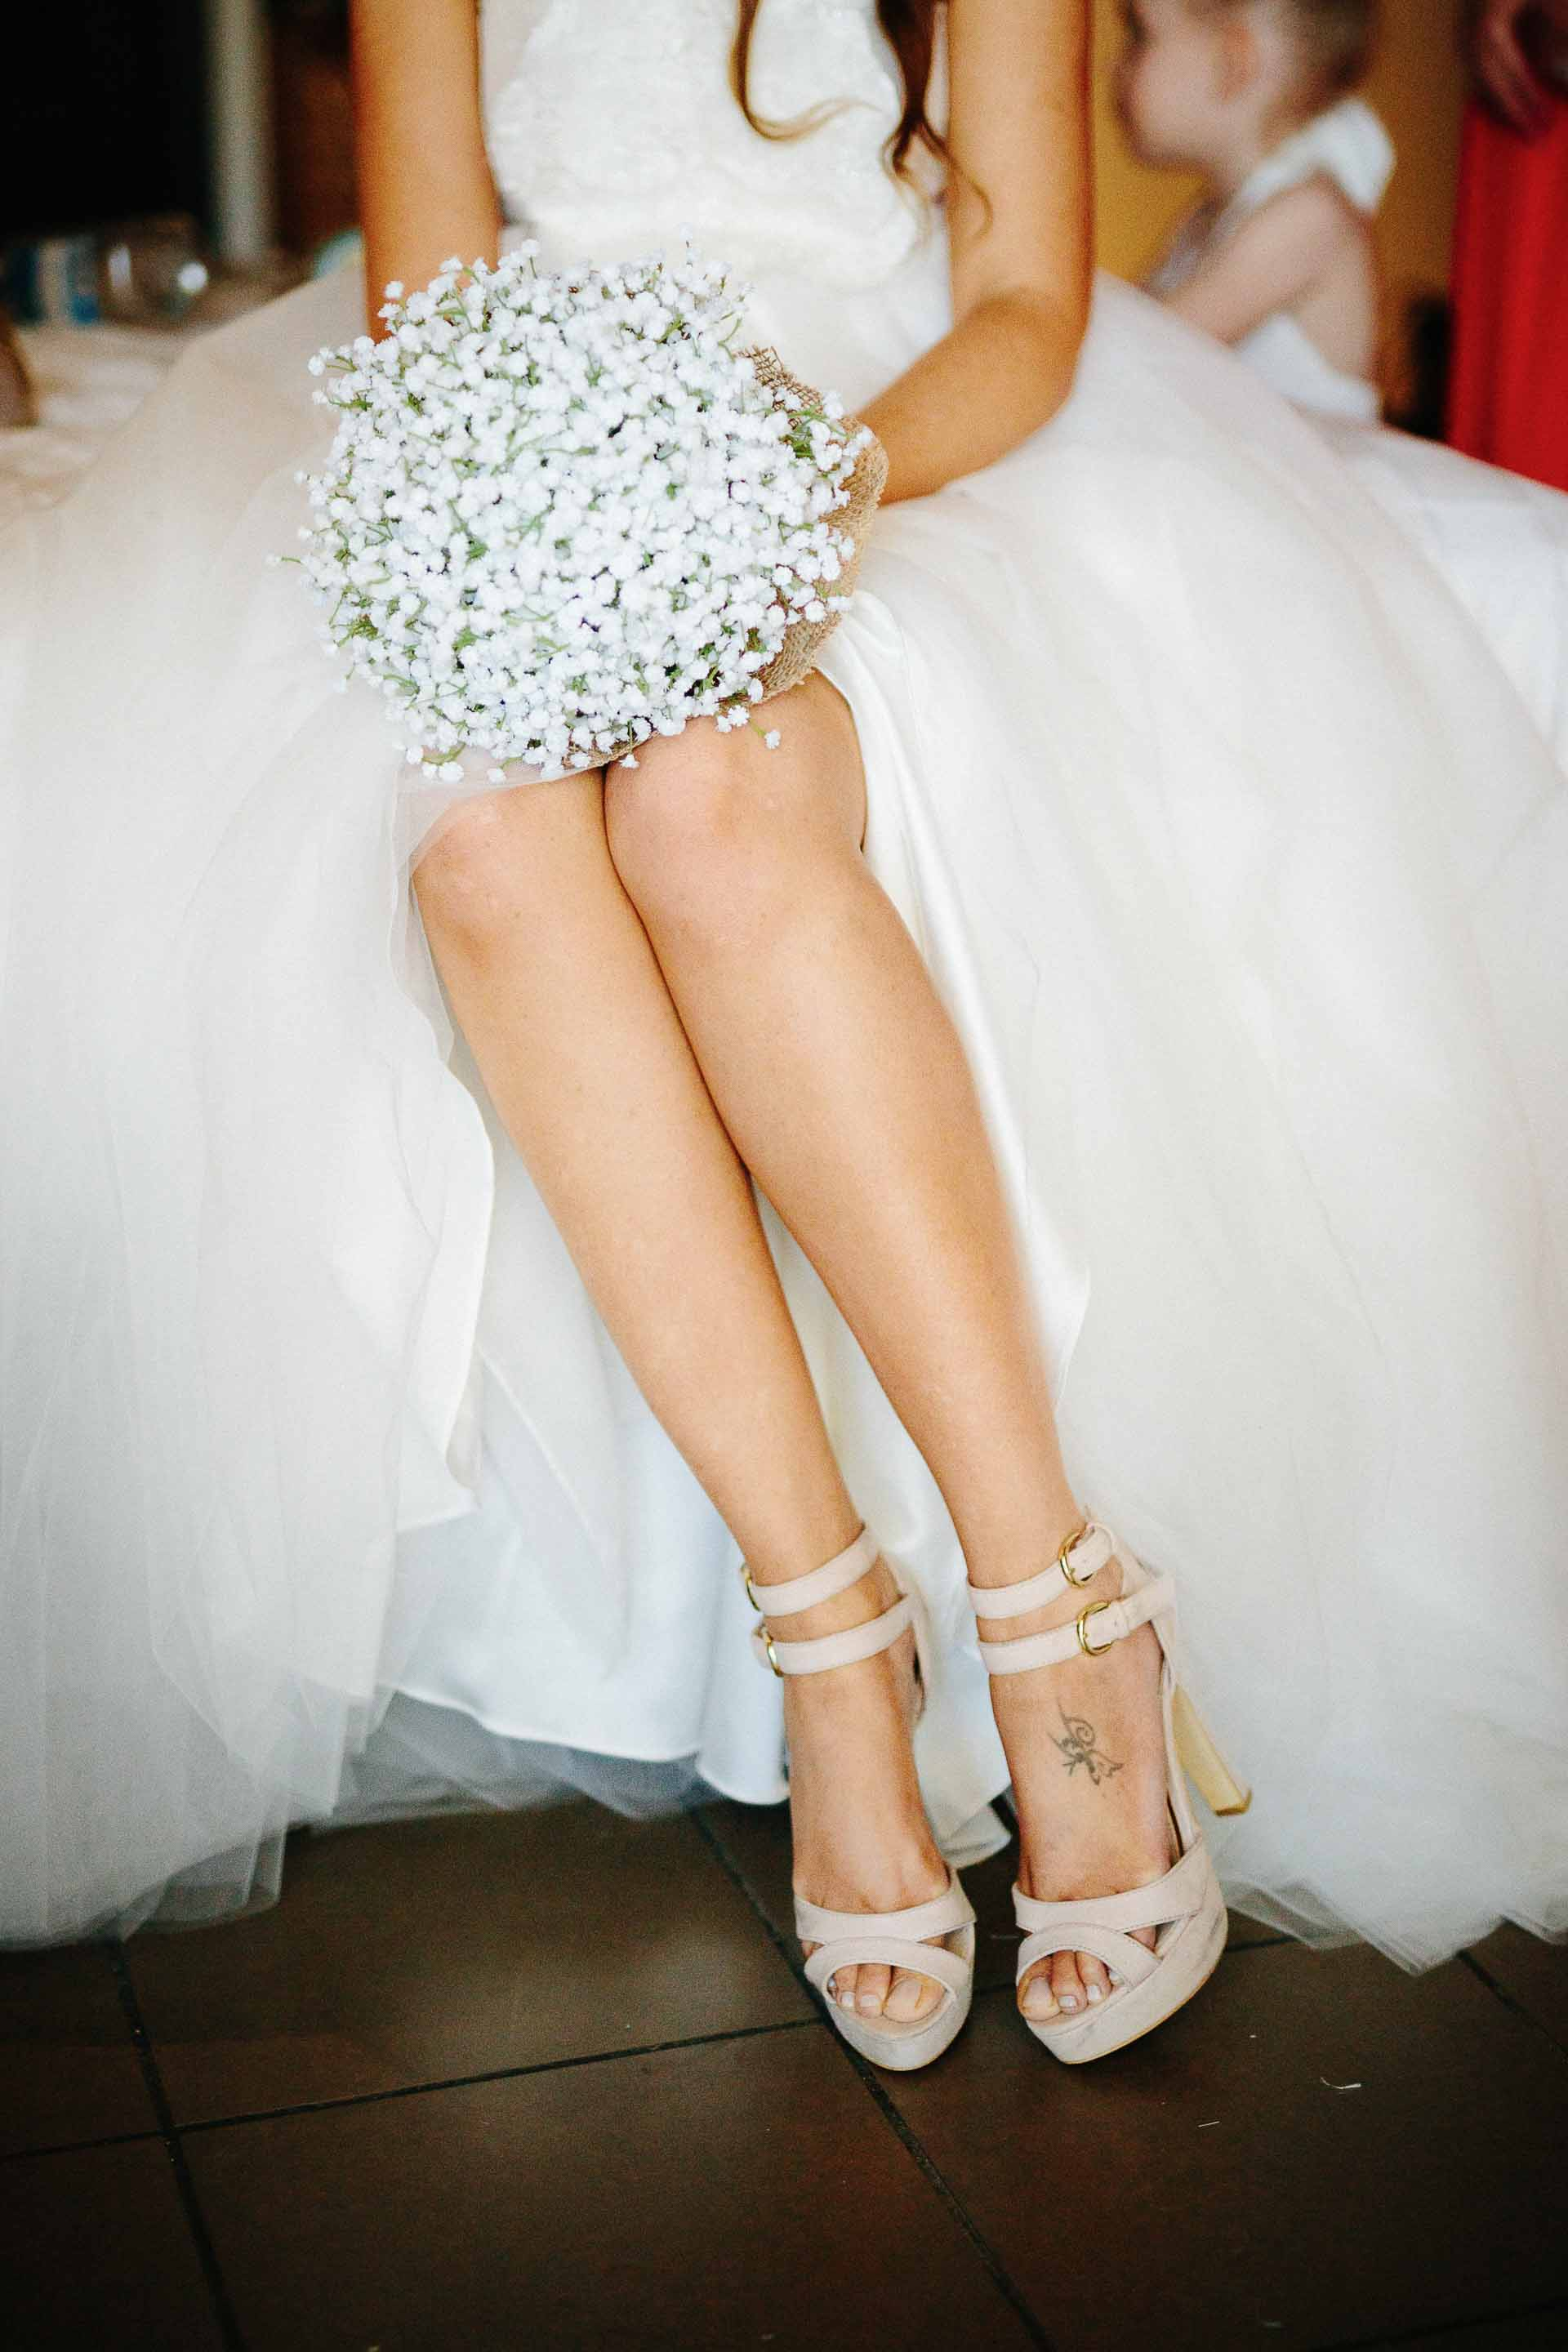 brides legs with her shoes and bouquet